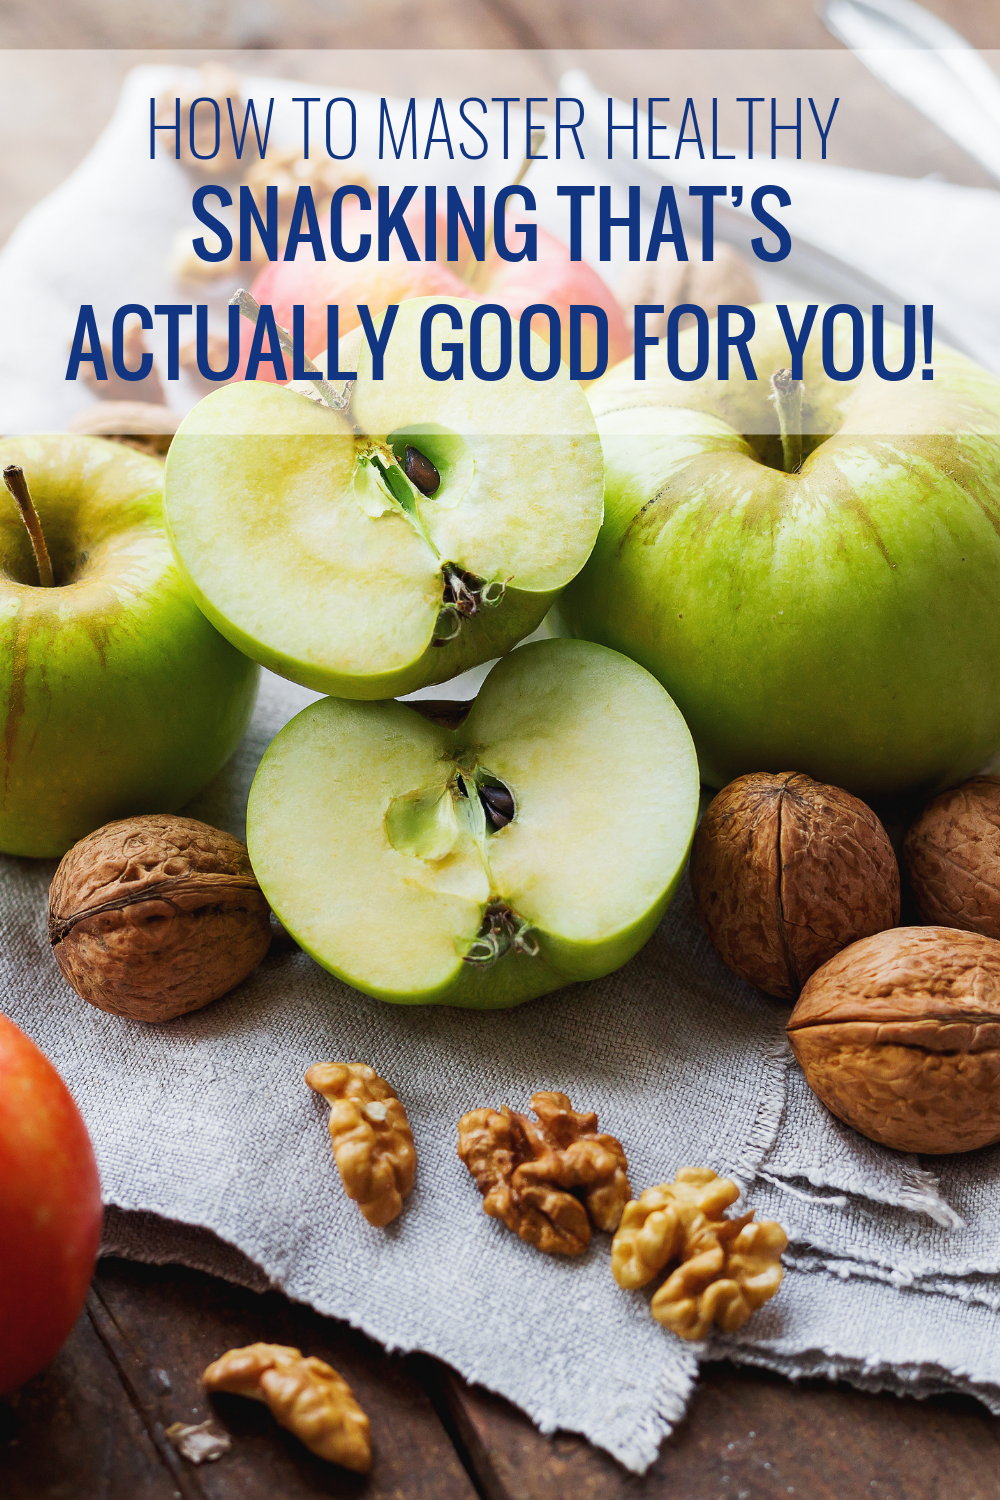 Snack Like A Pro: How to Master Healthy Snacking That's Actually Good For You!